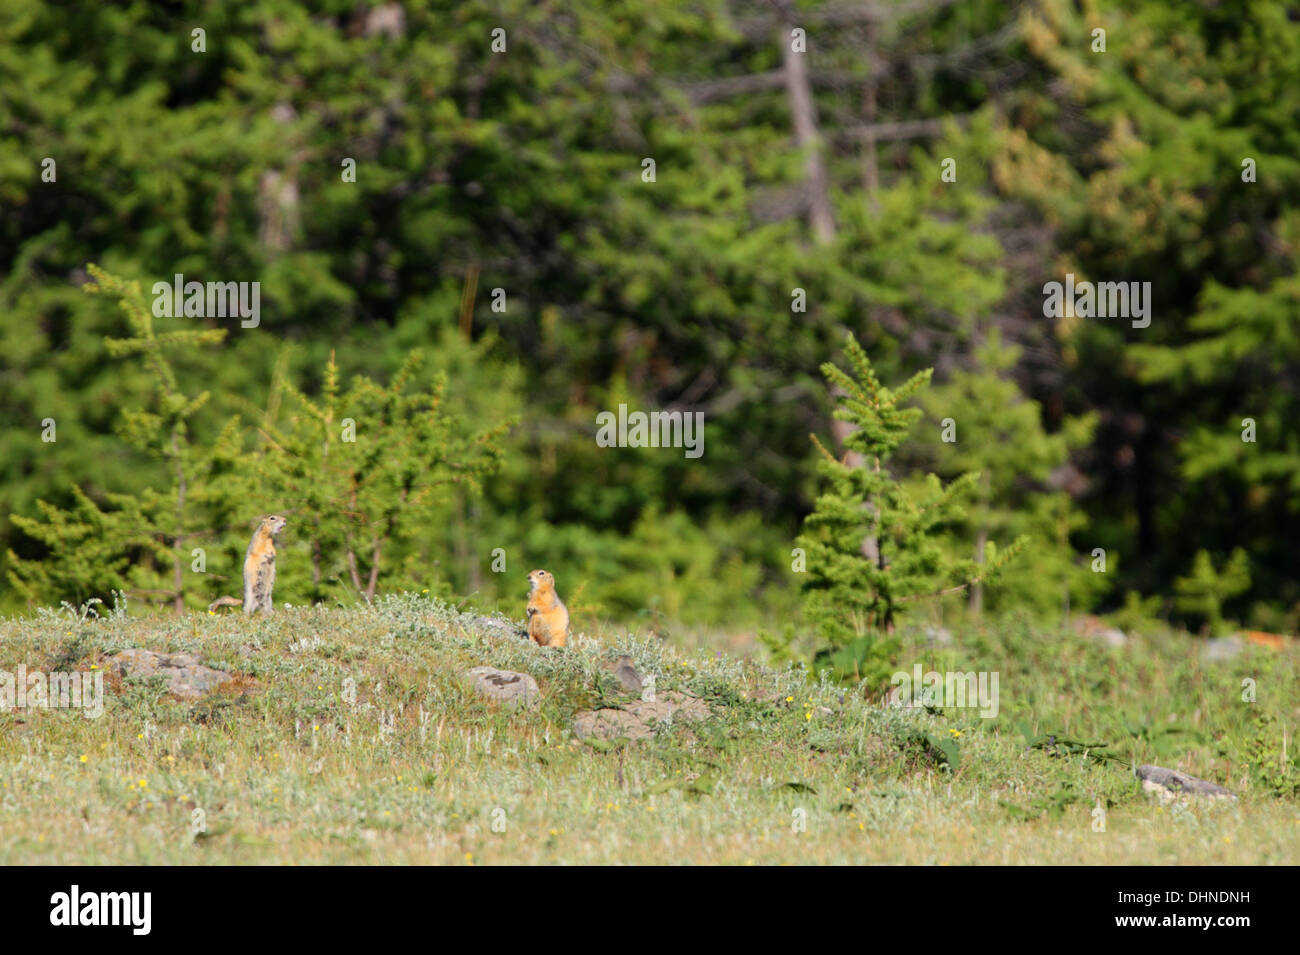 Long-tailed Ground Squirrells (Spermophilus undulatus) in their habitat. At the meadow by the lake Baikal, Siberia, Stock Photo